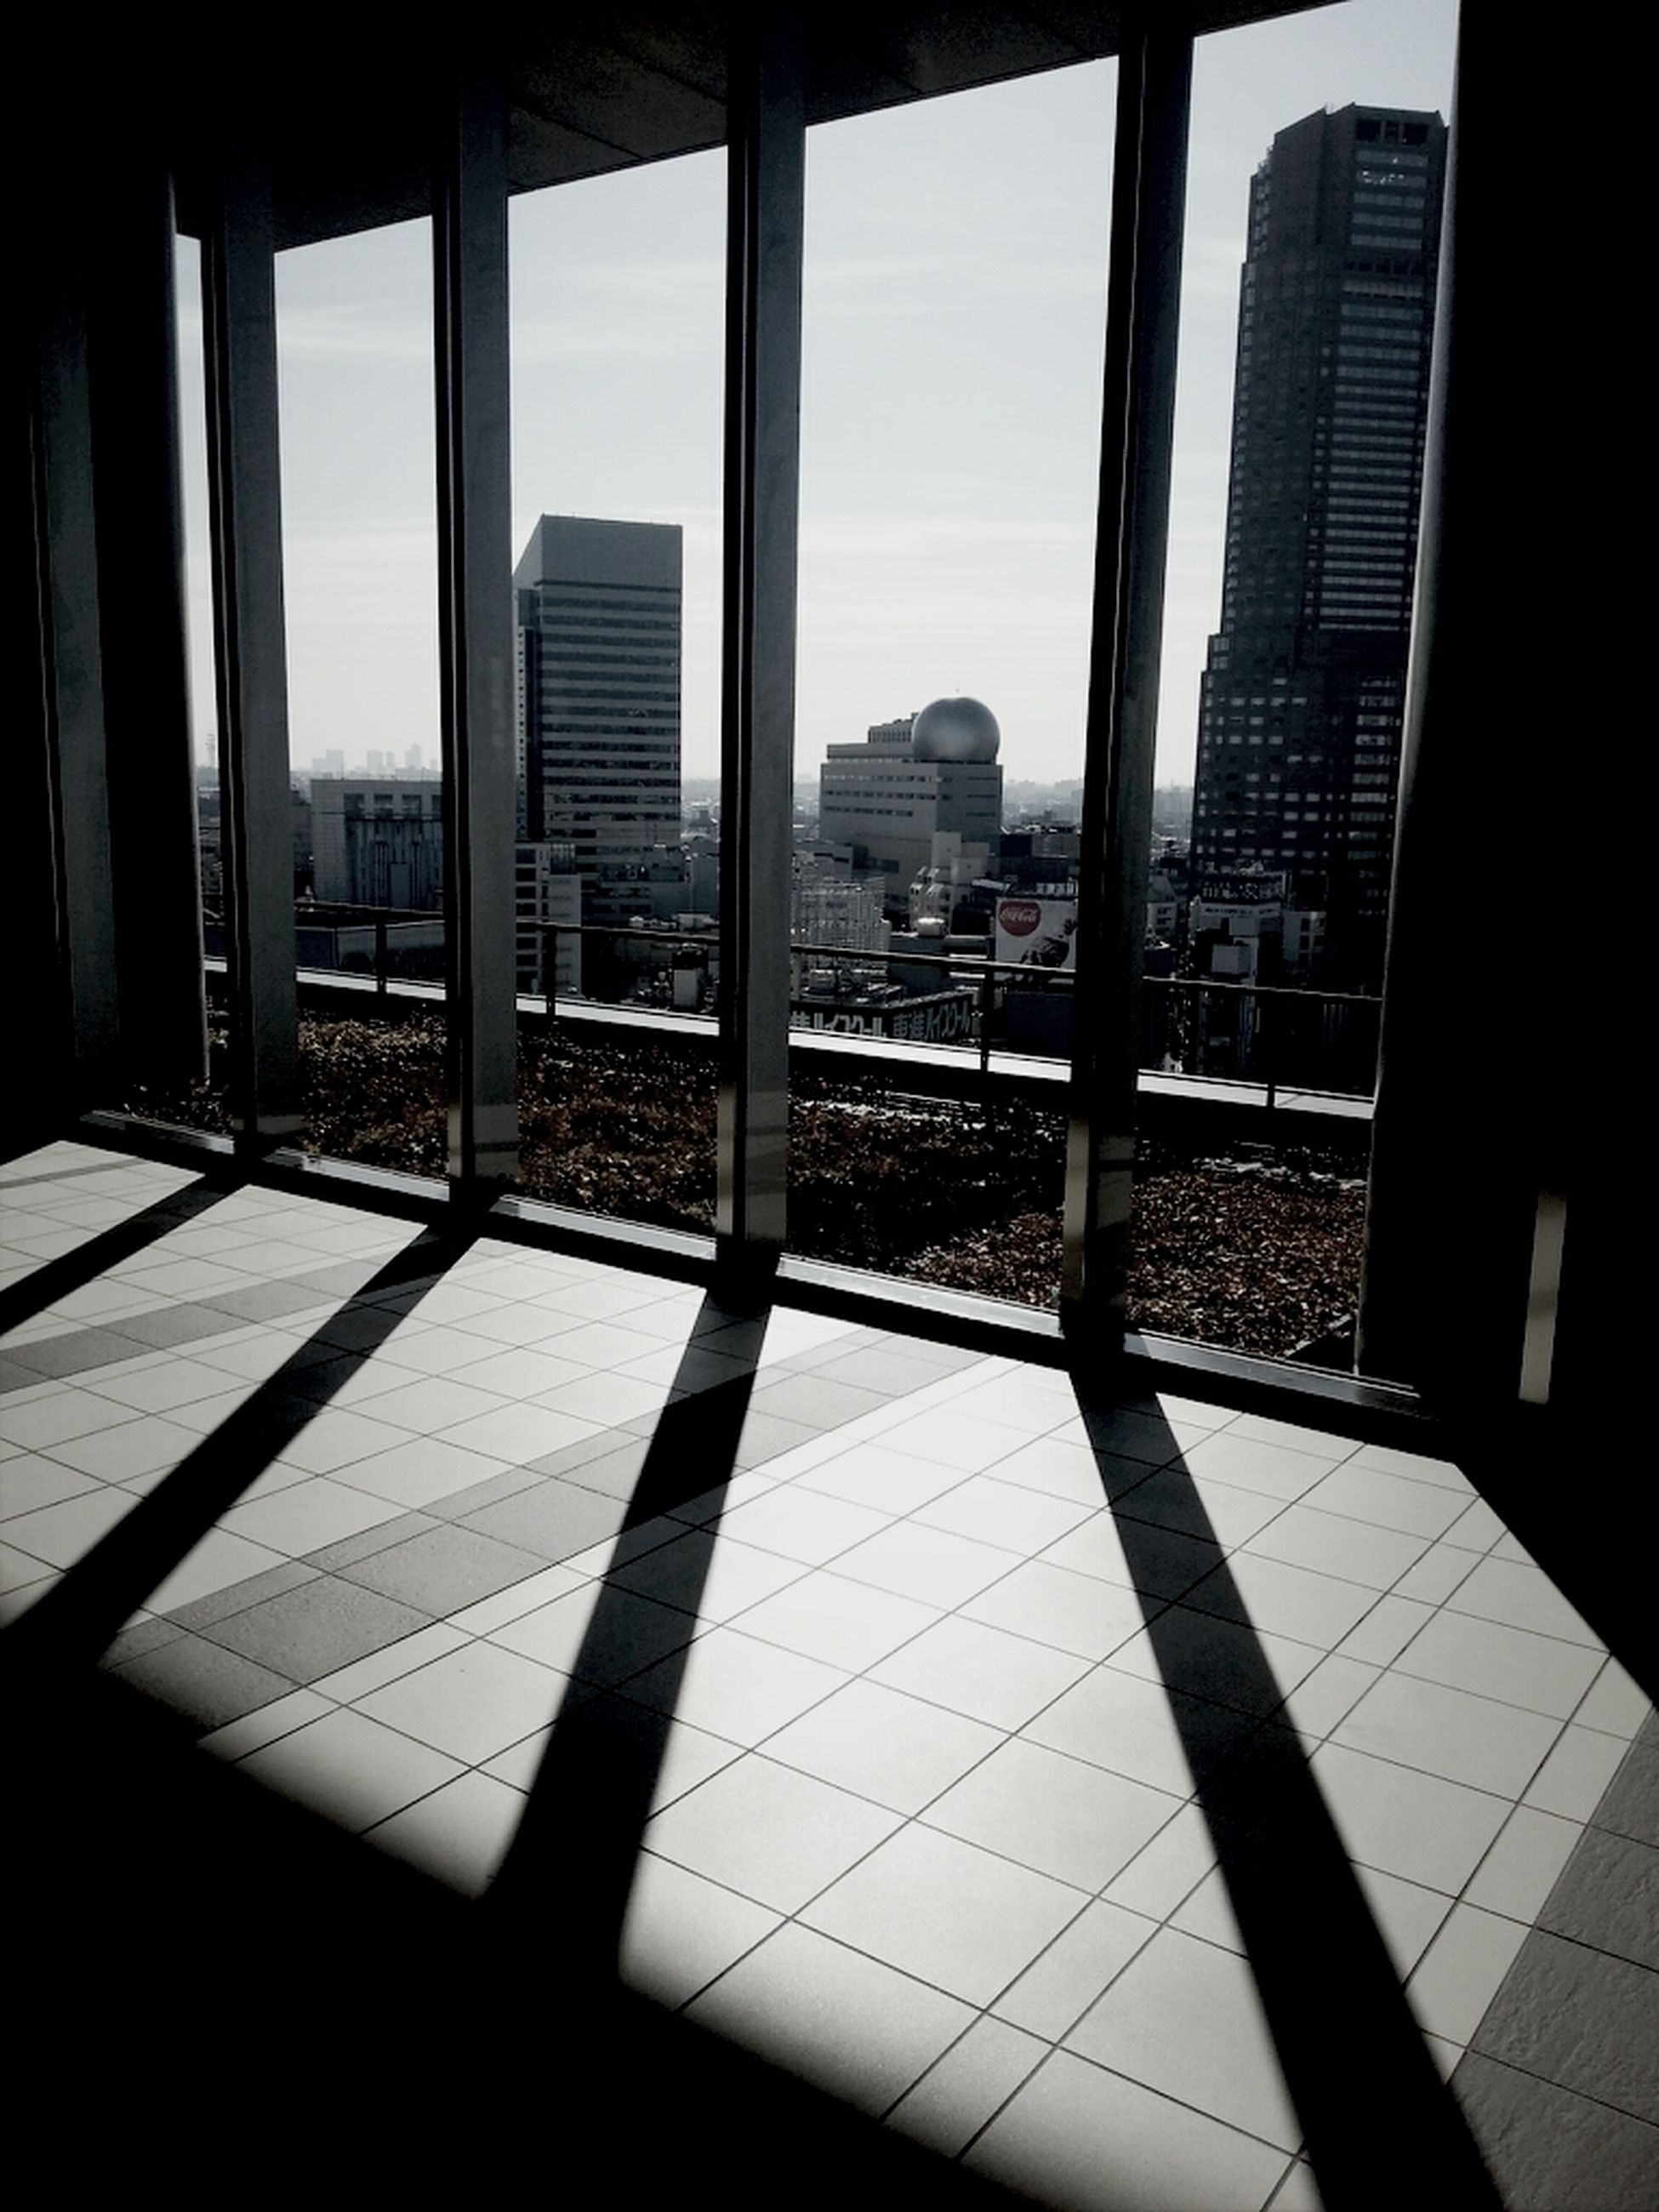 architecture, built structure, building exterior, city, indoors, modern, glass - material, office building, window, skyscraper, building, sunlight, shadow, reflection, tall - high, day, sky, tower, transparent, cityscape